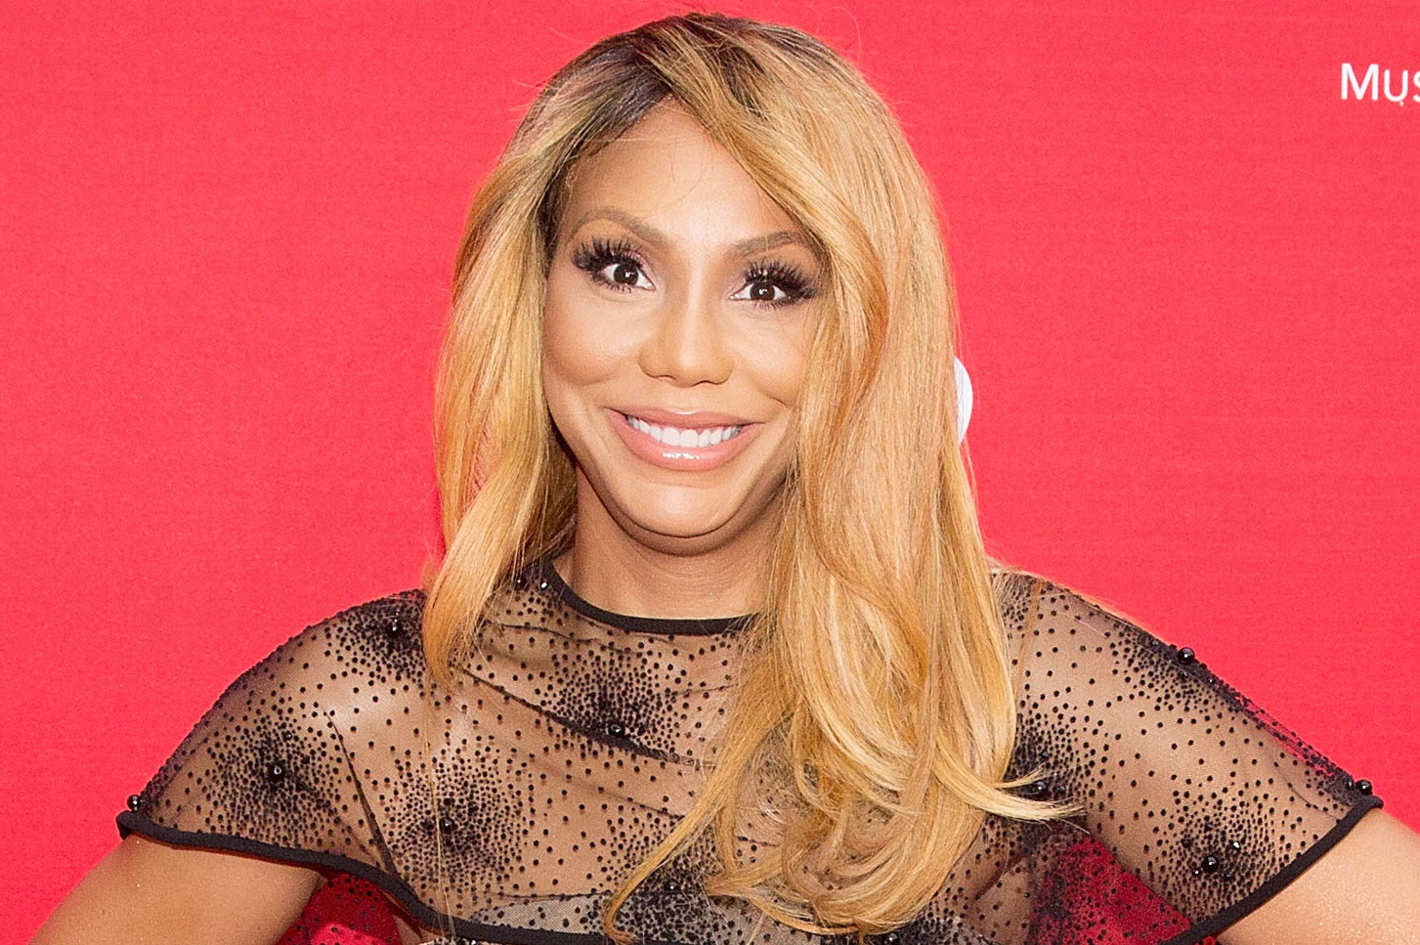 Tamar Braxton Gets Bashed By Haters Who Call Her A 'Sell Out' After Participating At Her First Pride - See The Video In Chicago Show